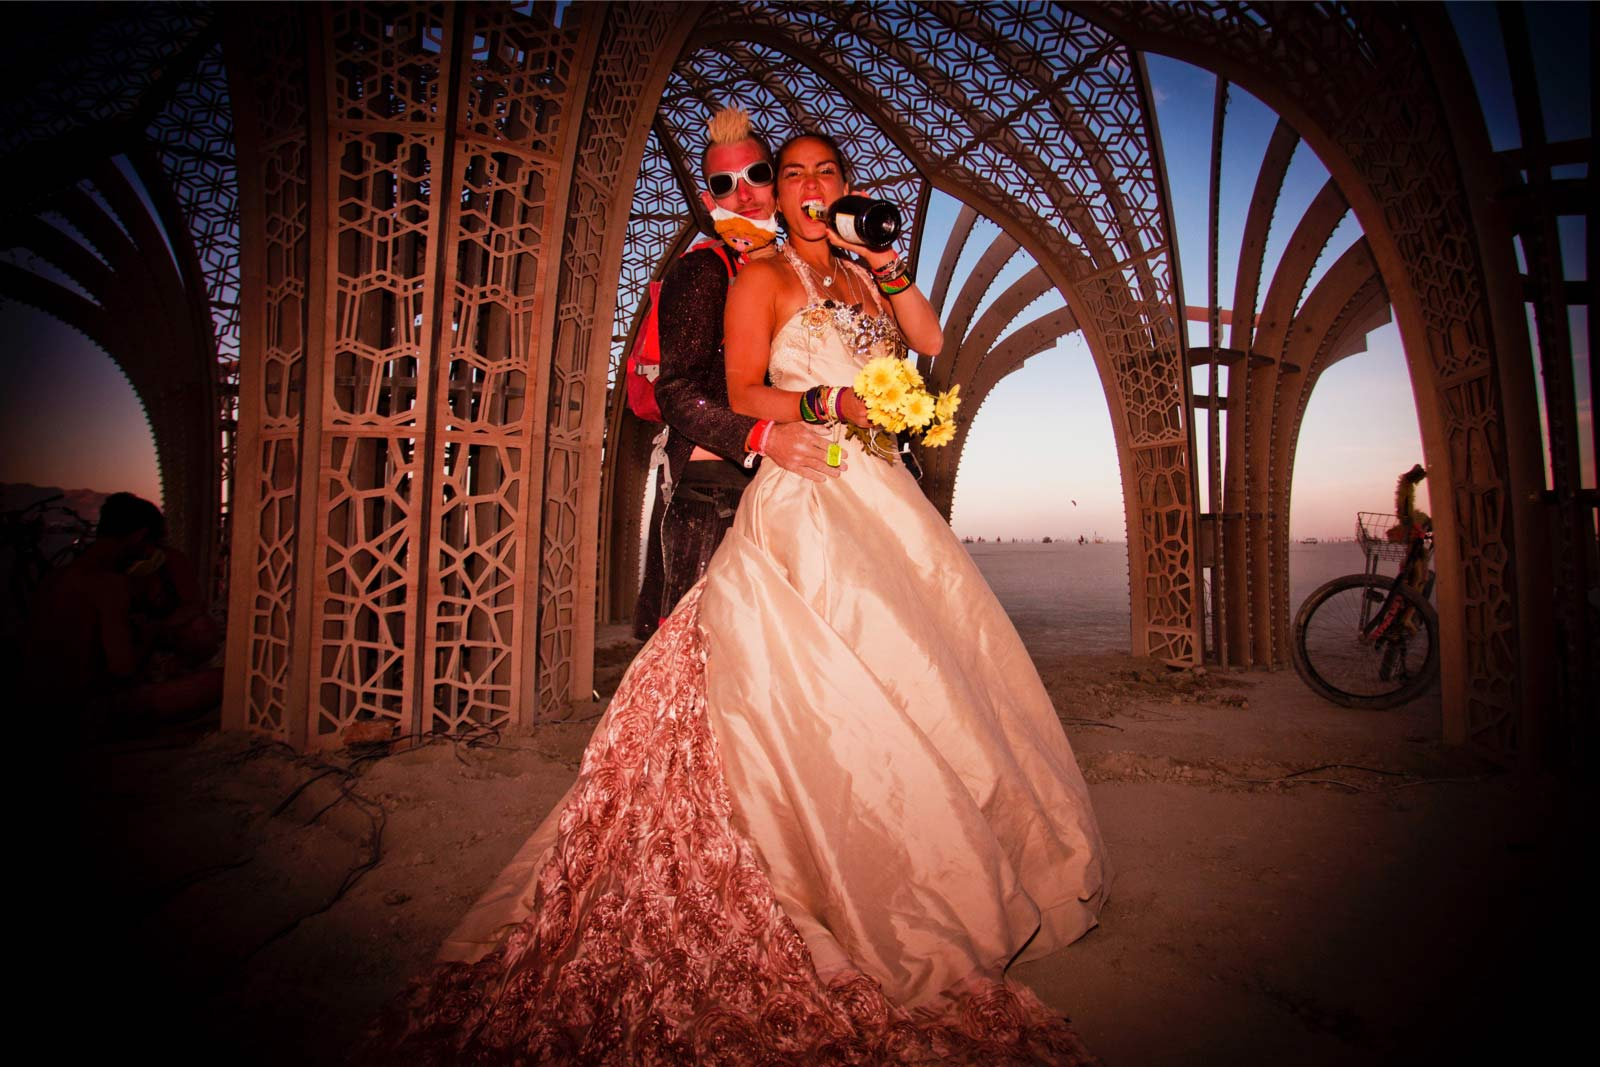 Burning-Man-2015-98;-Robin-Stephan's-Wedding-Sunset-Playa-Arbour